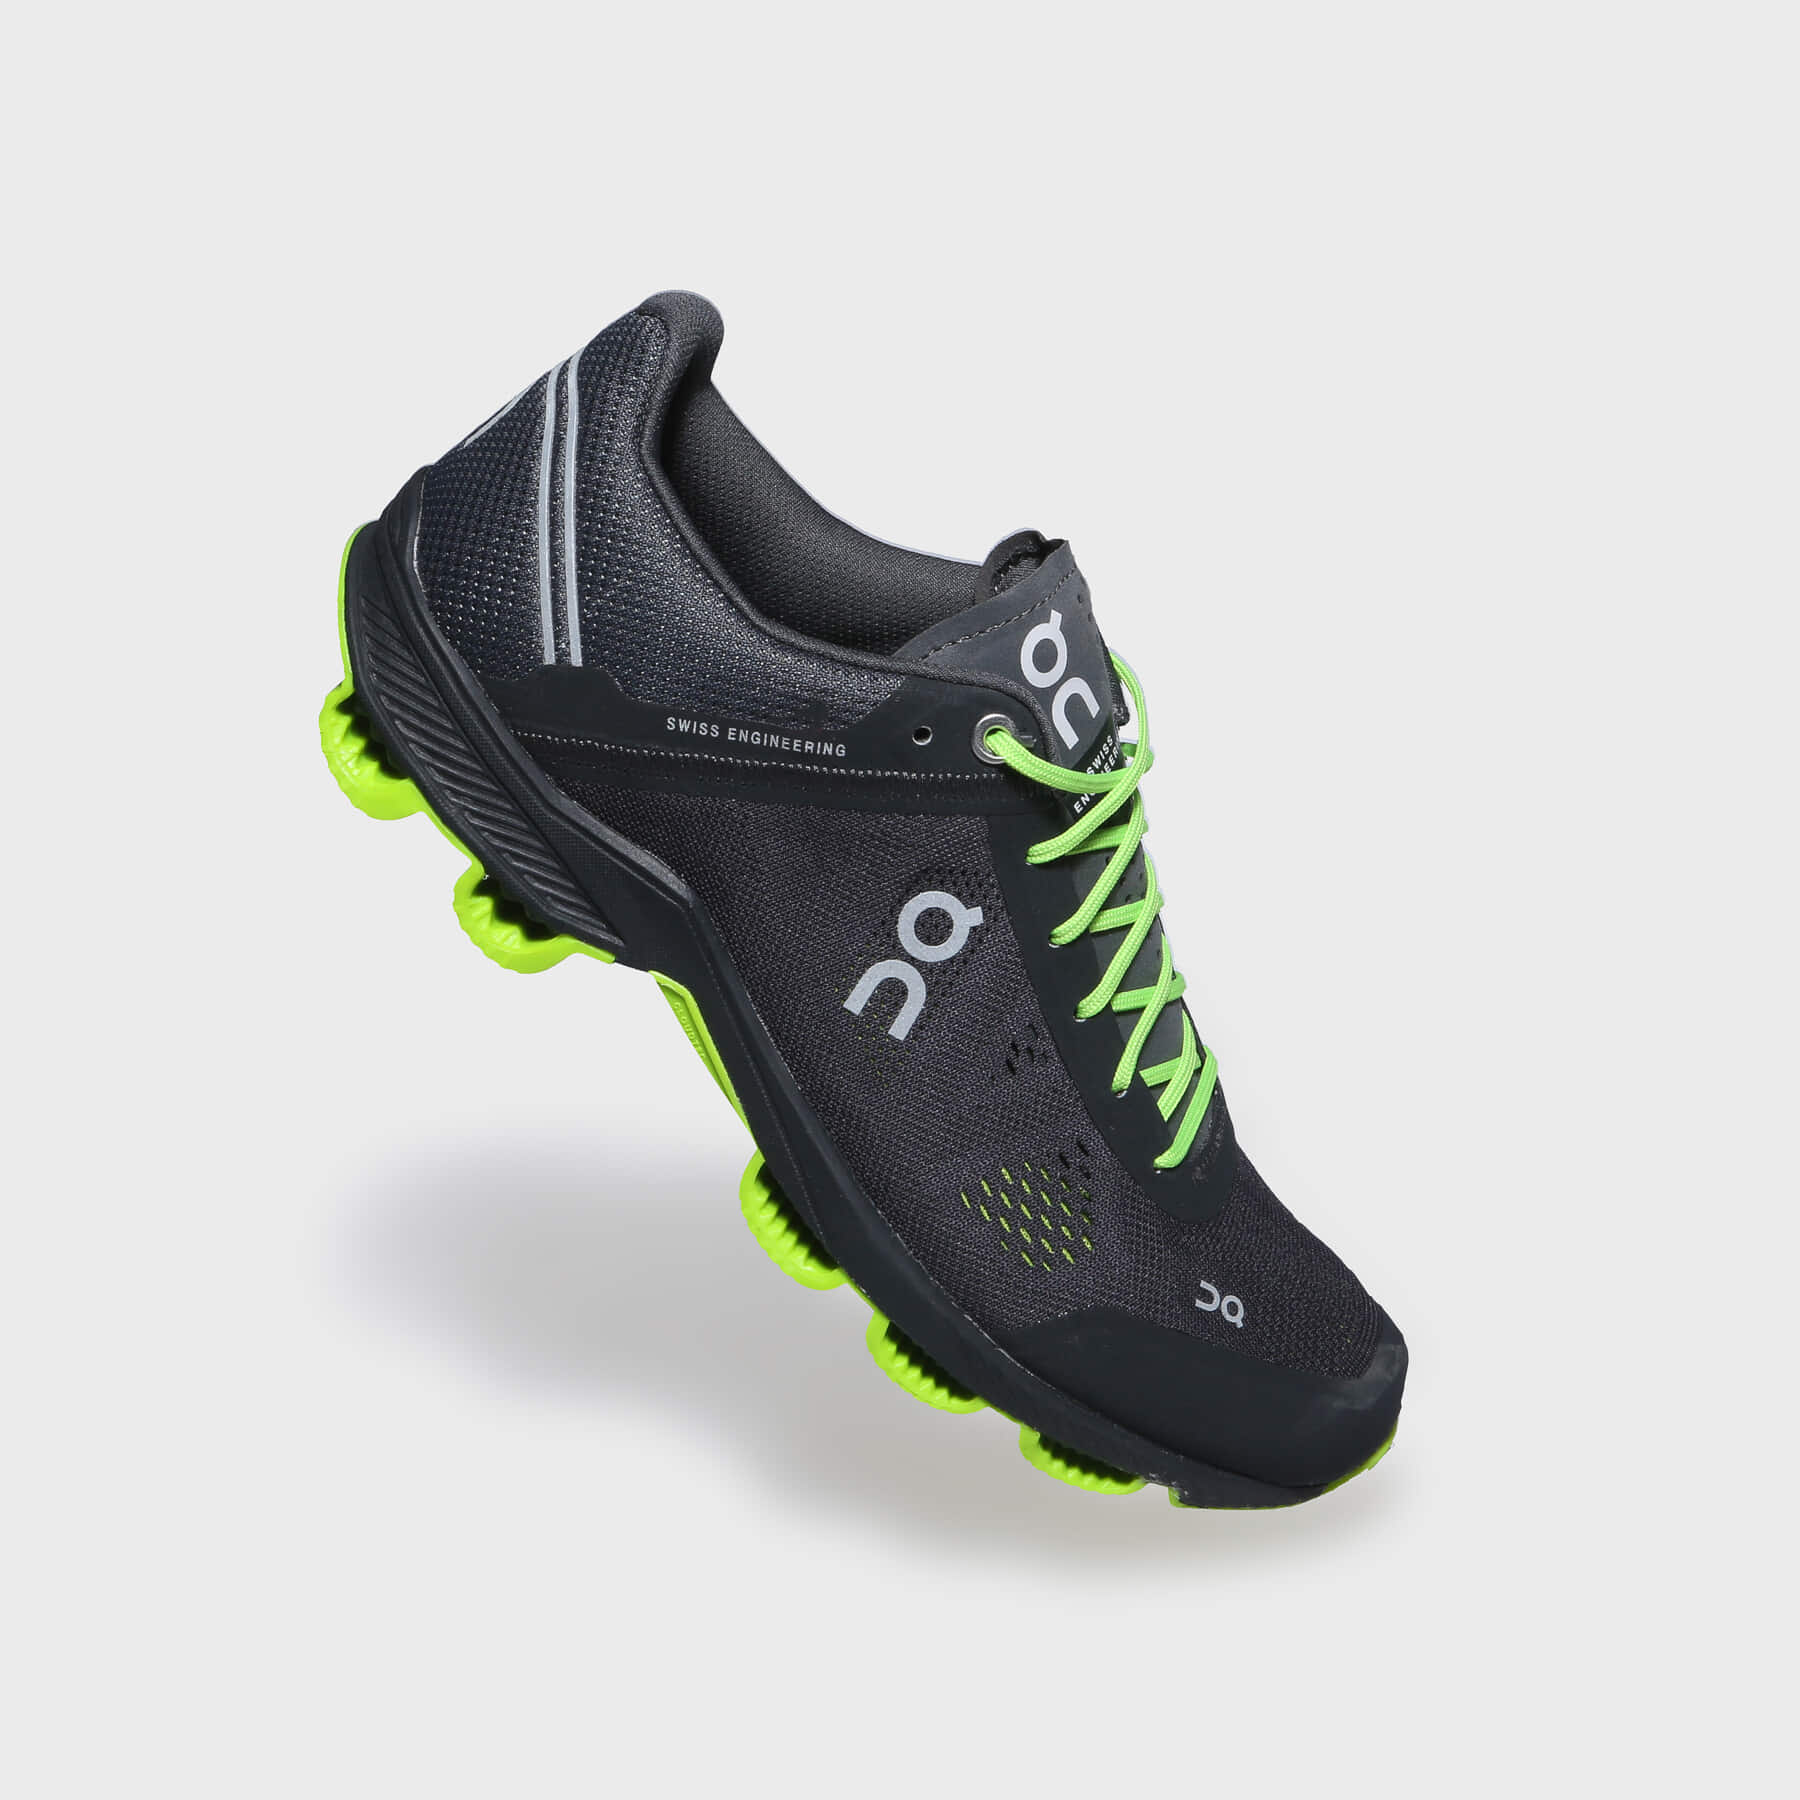 Cloudsurfer%20black%20lime%20woman